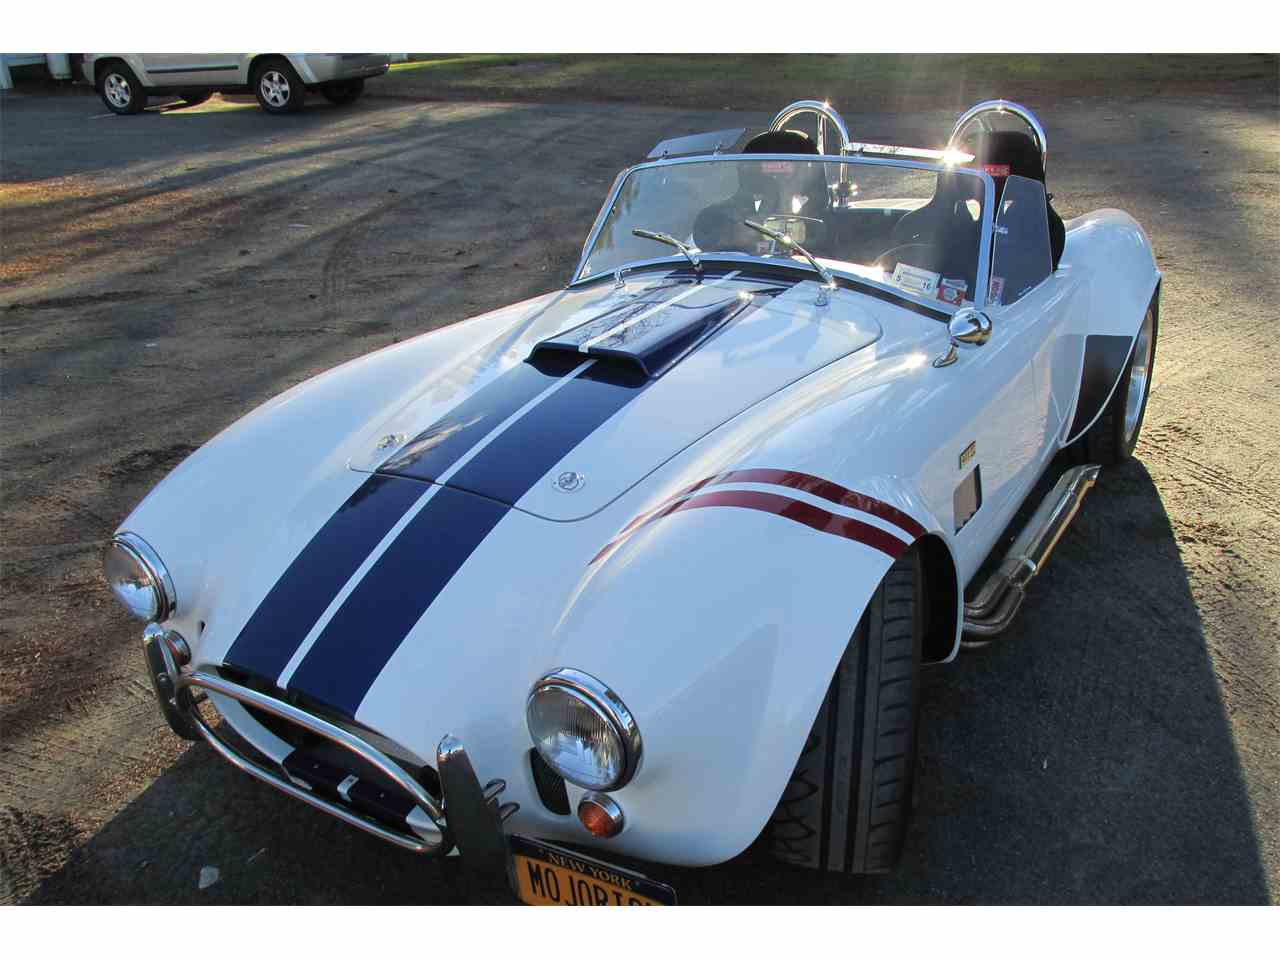 Large Picture of Classic '65 Cobra Replica located in New York Offered by a Private Seller - N693